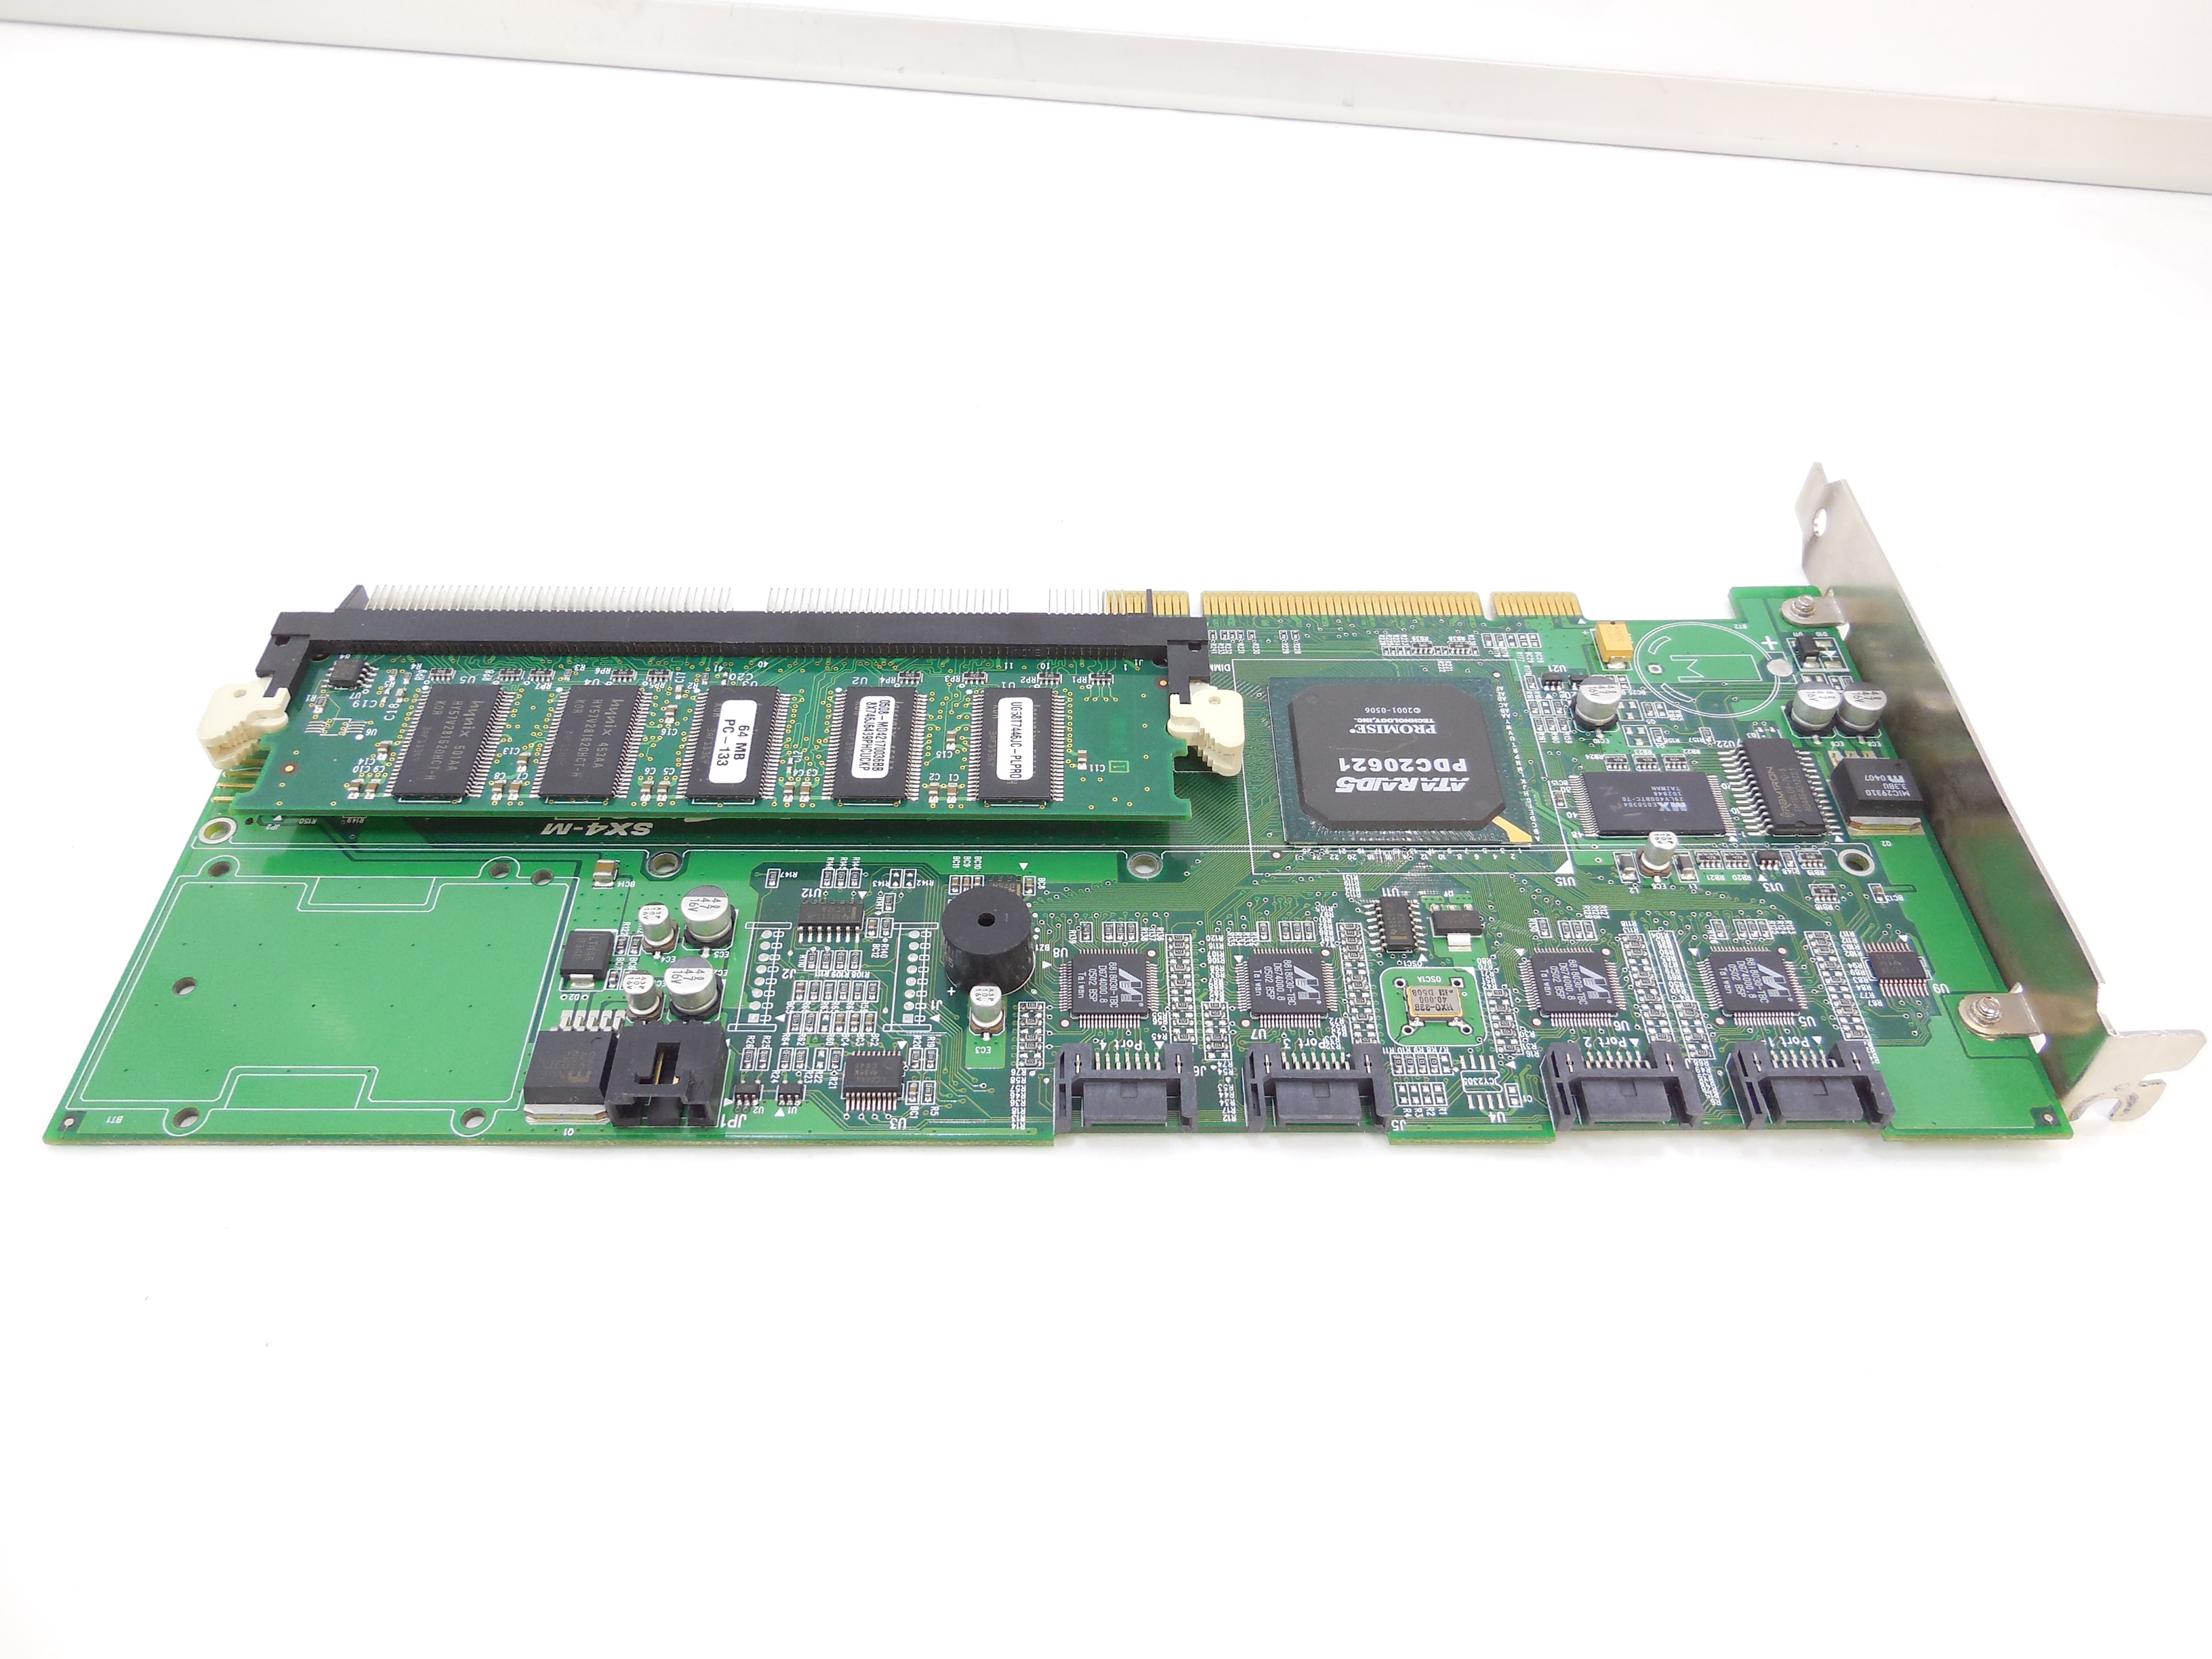 FASTTRAK S150 SX4-M DRIVER FOR WINDOWS 7